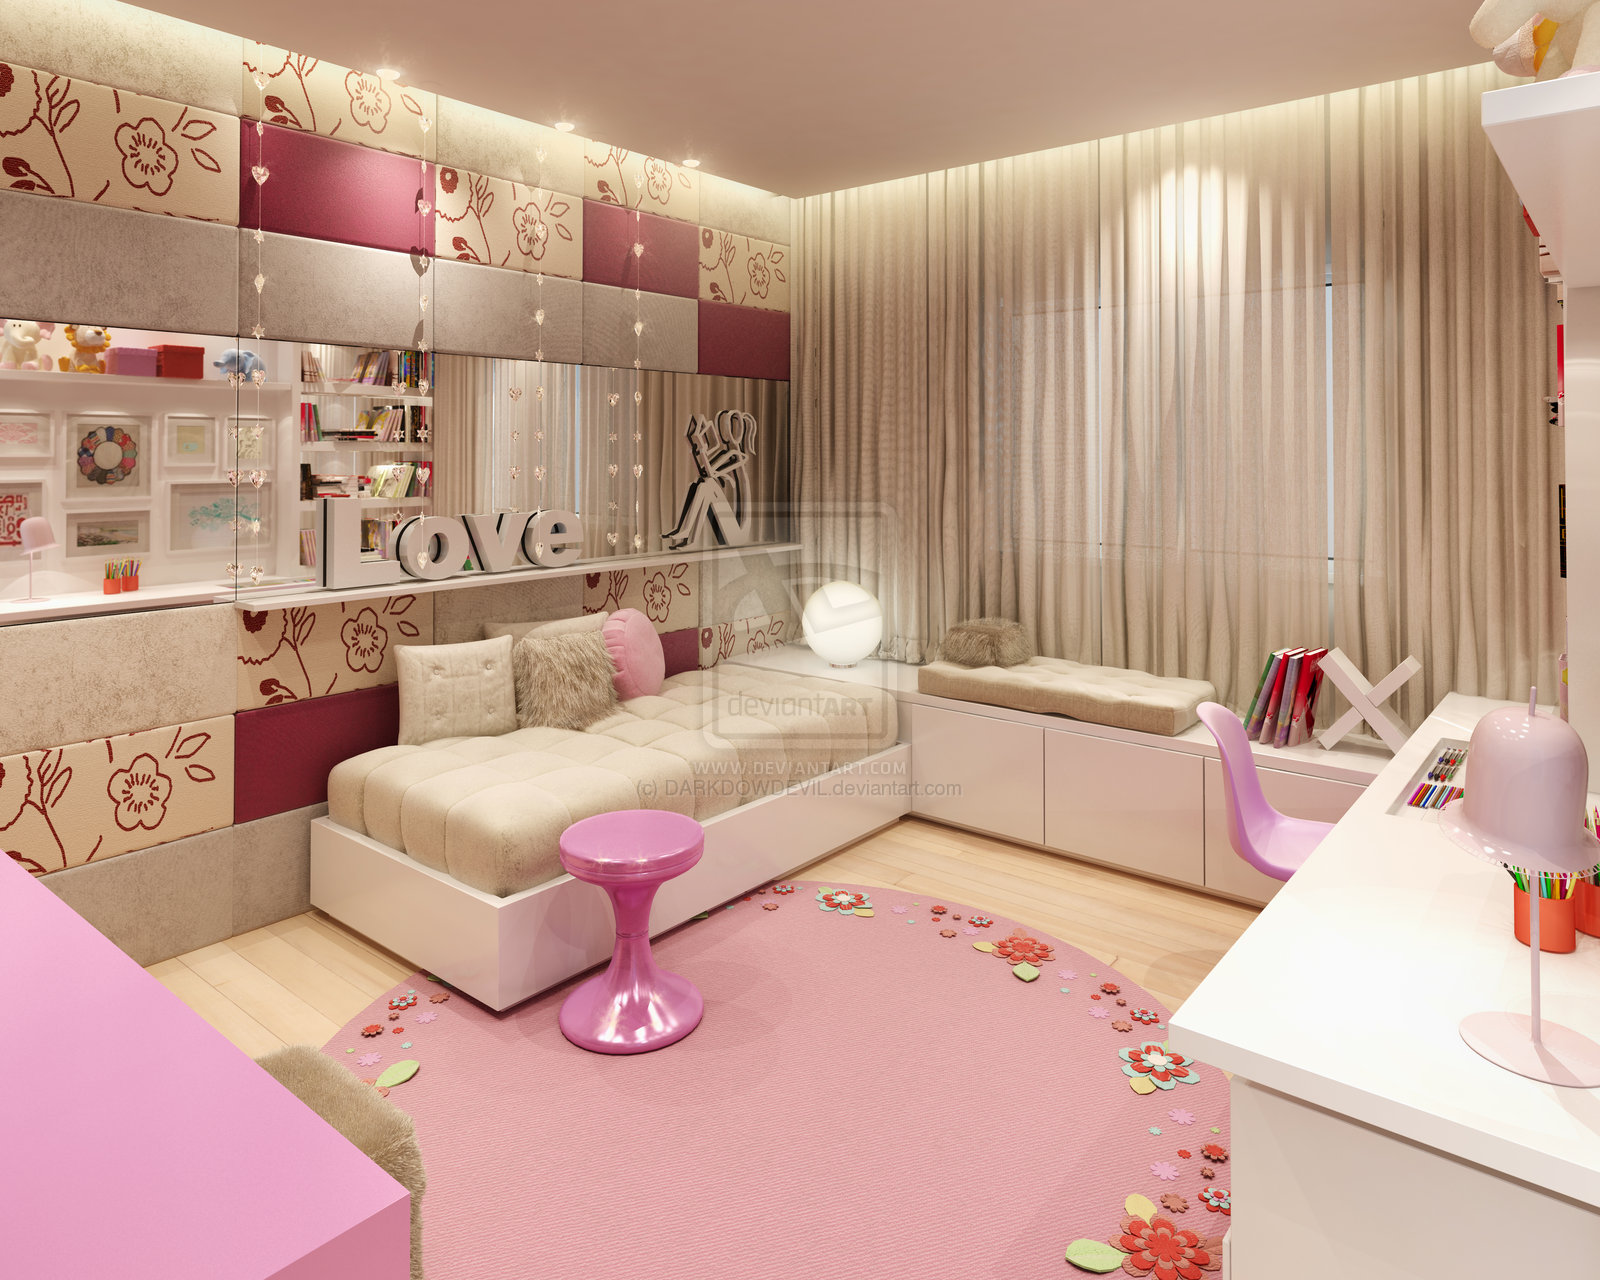 Home design interior monnie best girl bedrooms in the world Girls bedroom ideas pictures